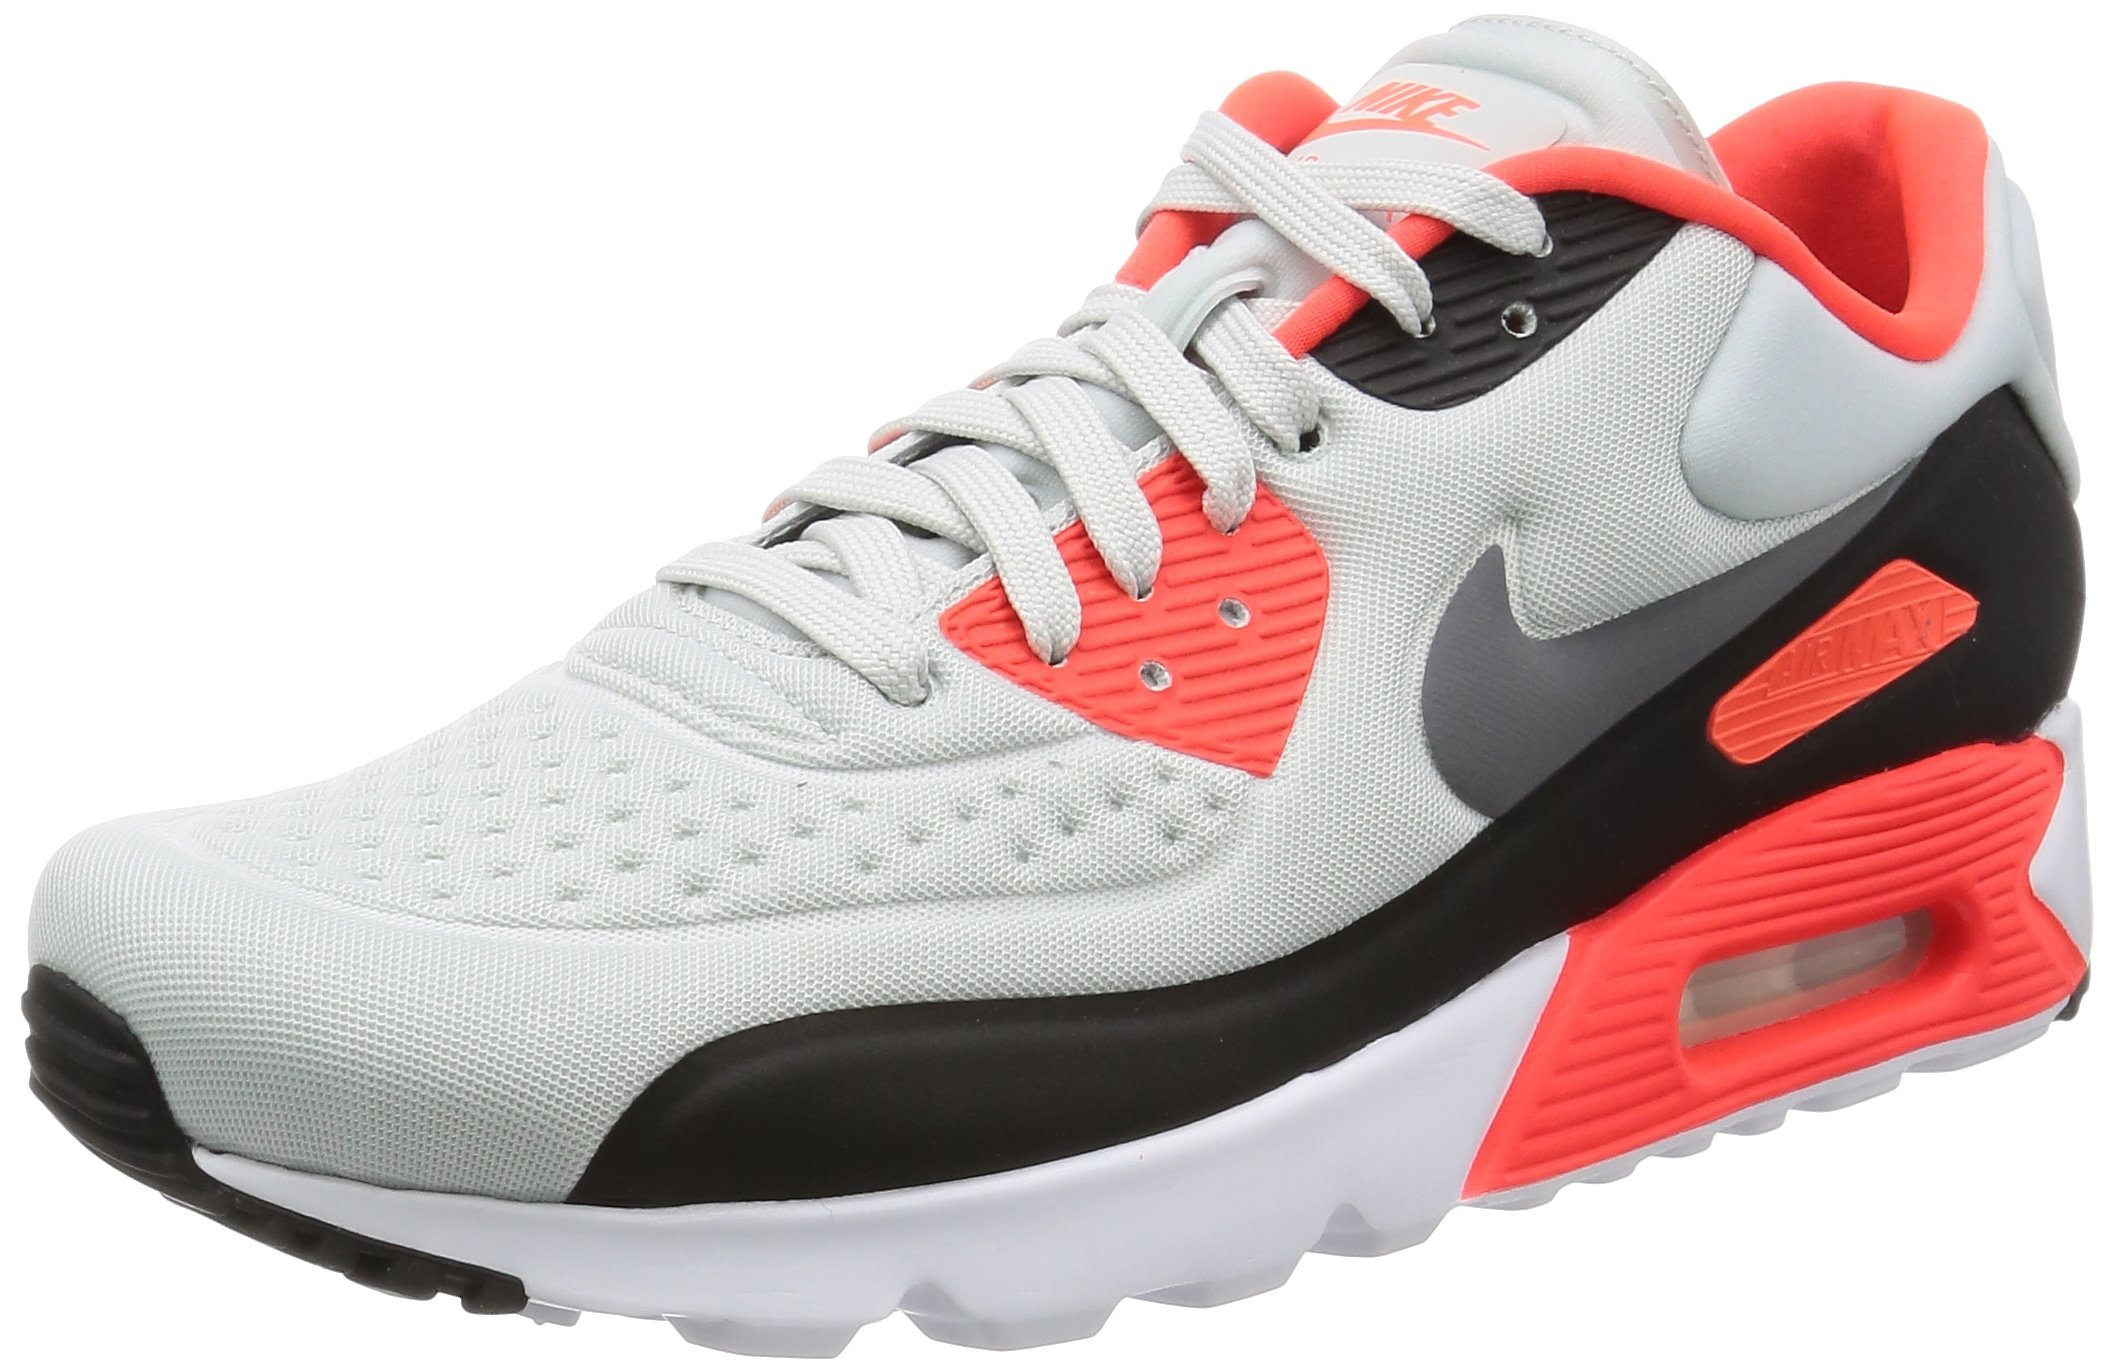 NIKE Air Max 90 Ultra 2.0 Essential Mens Running Shoes 875695 007_10 AnthraciteBlack University Red White